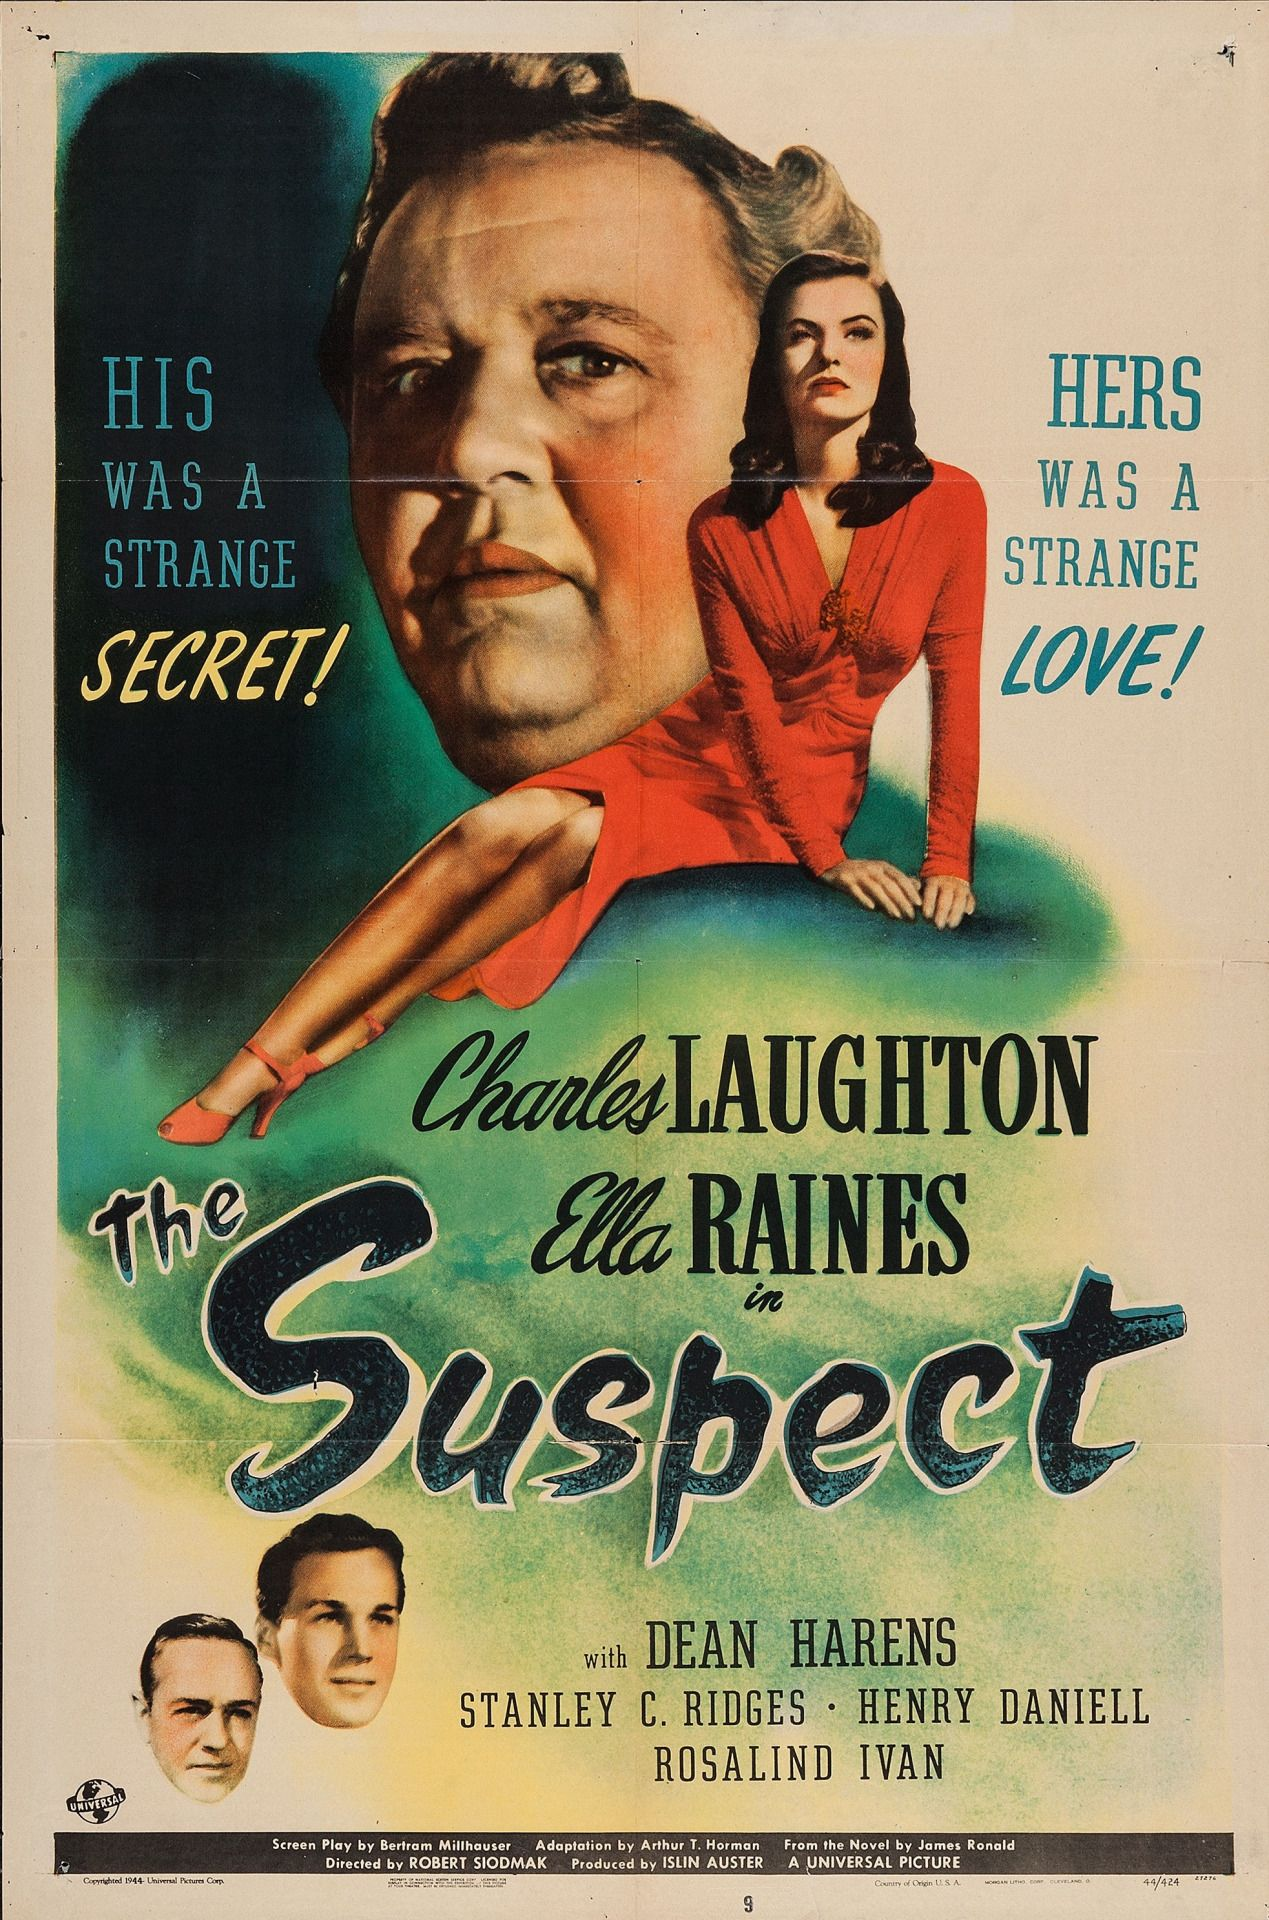 filmnoirfoundation   Old movie posters, Movie posters, Classic ...